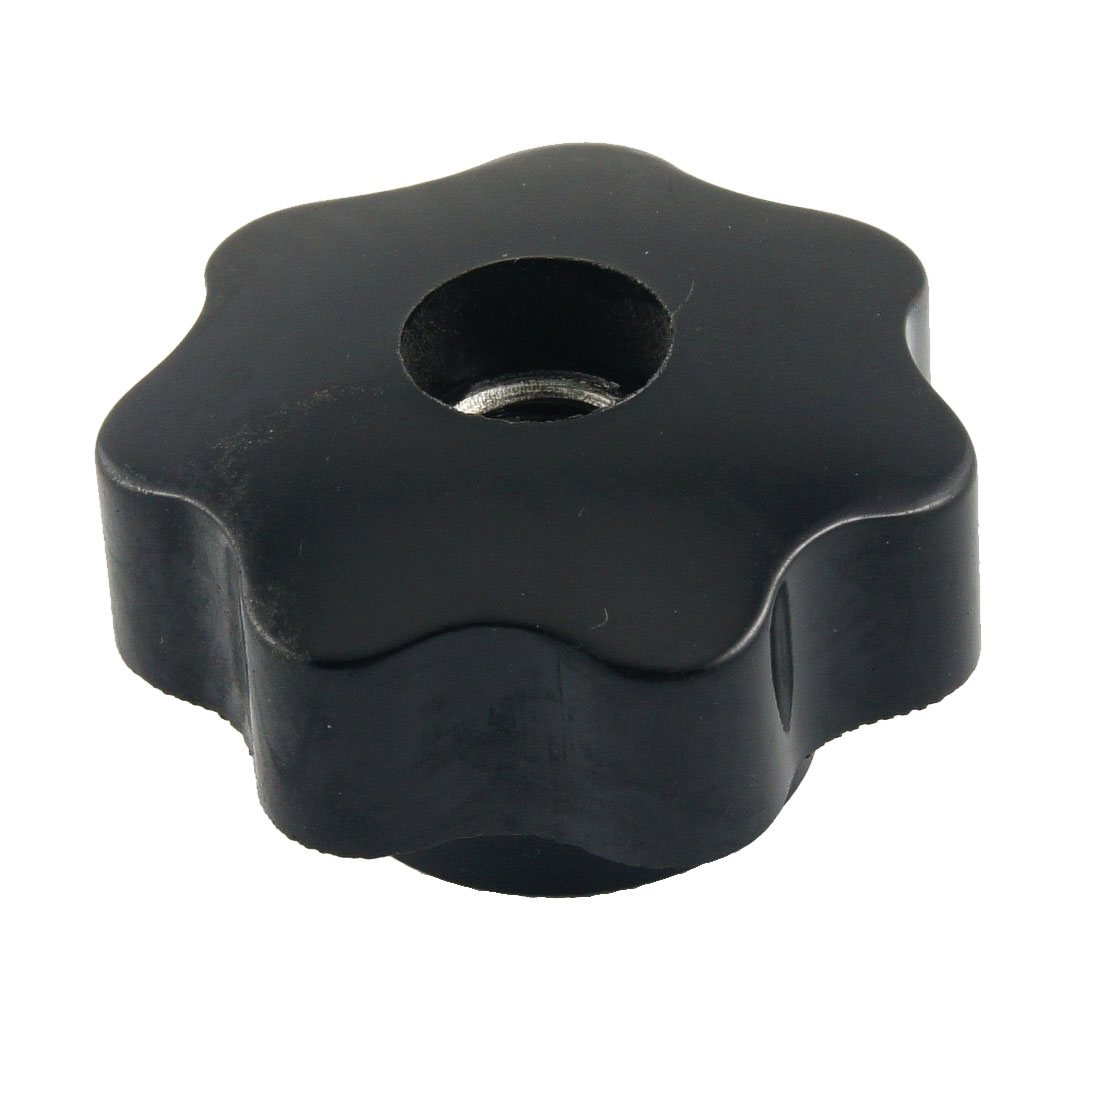 "0.39"" Dia Female Thread Black Plastic Star Head Clamping Knob"